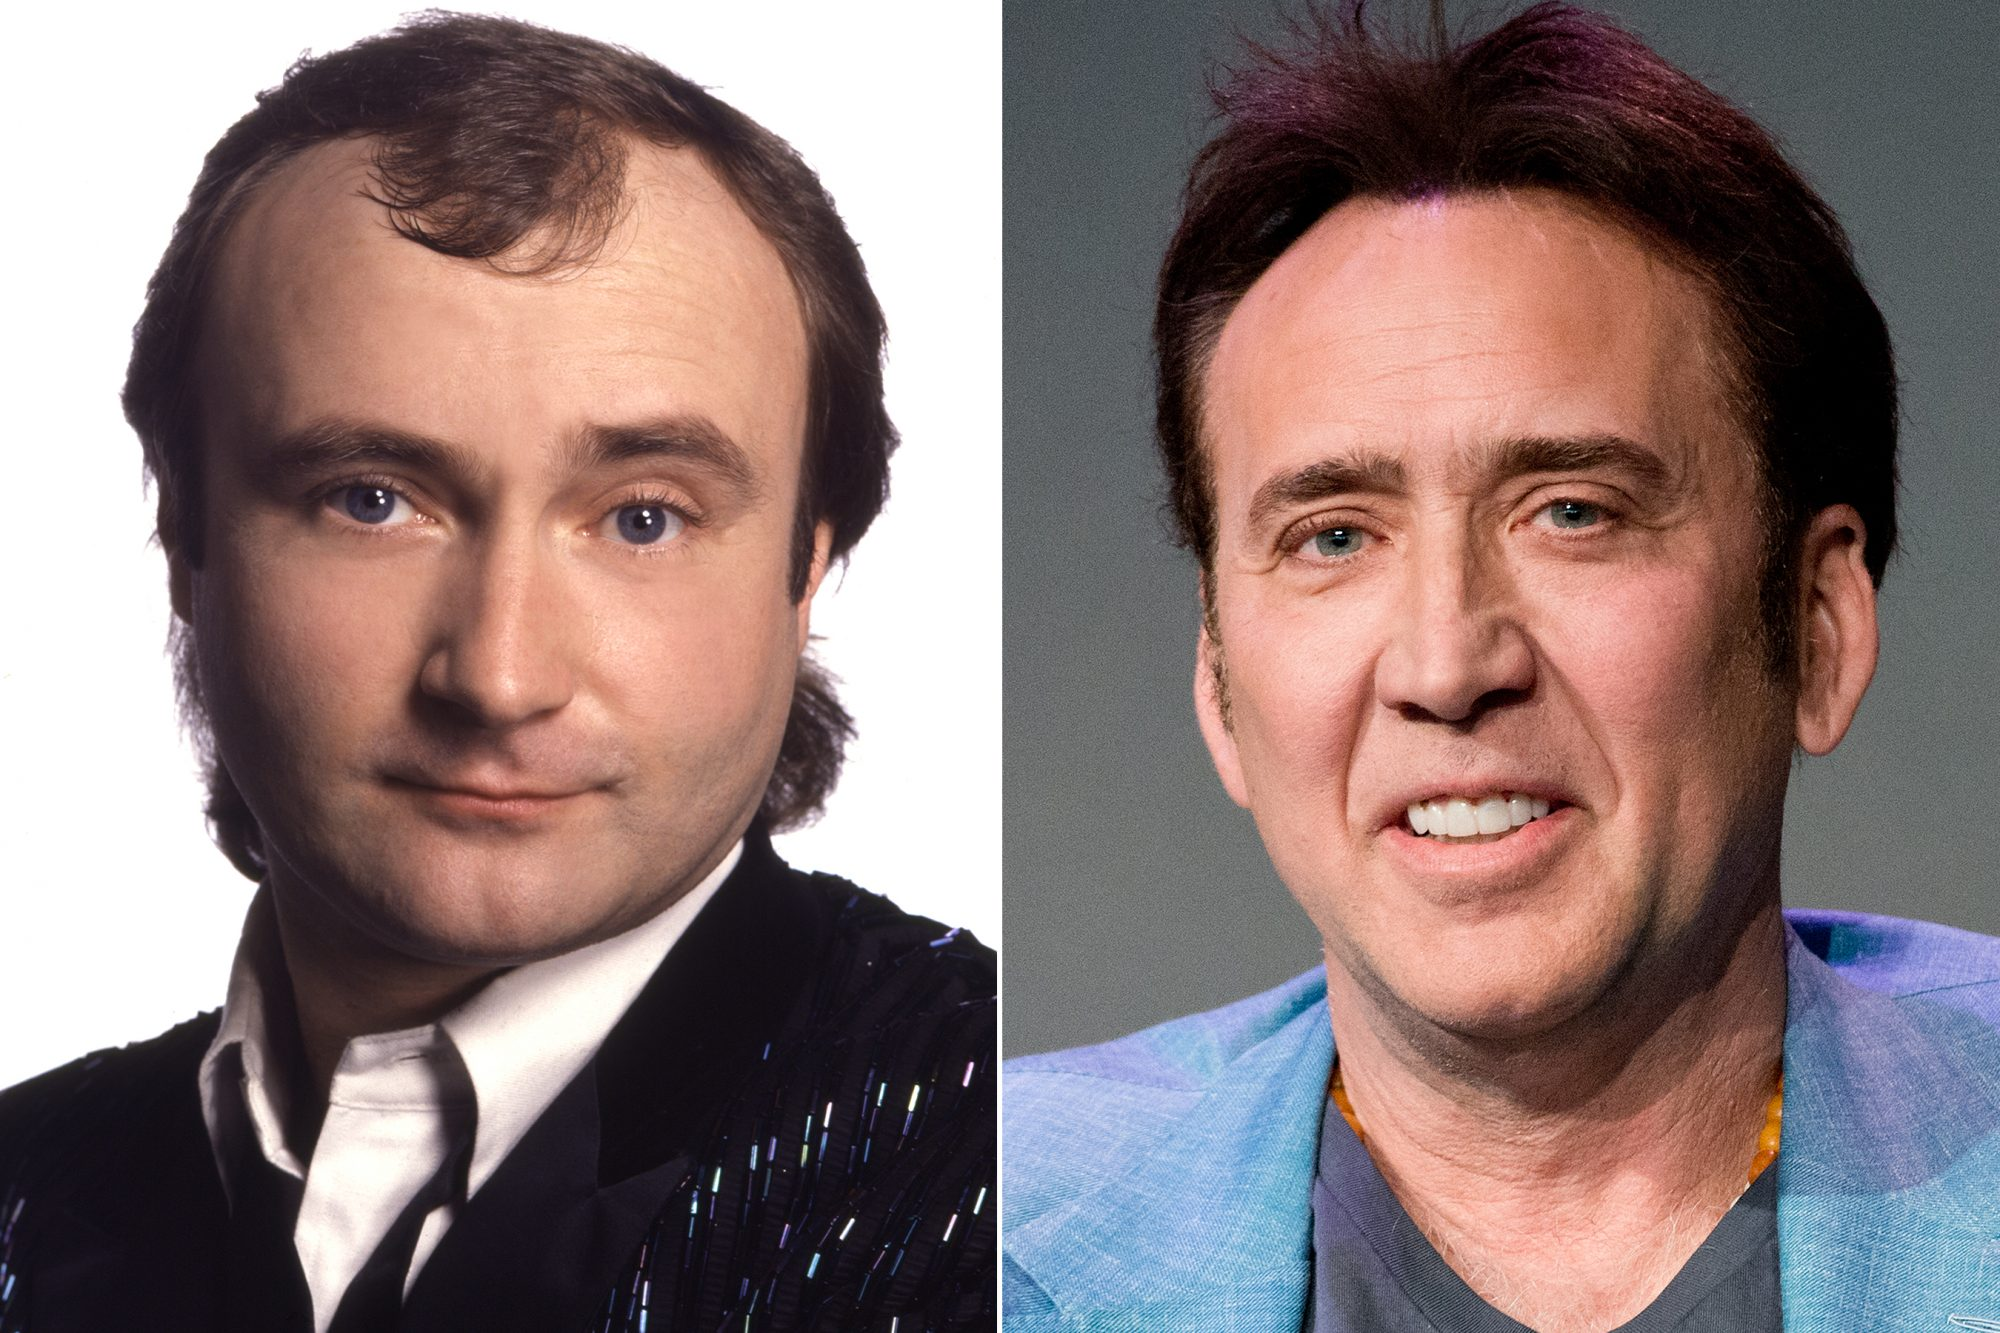 Phil Collins, Nic Cage